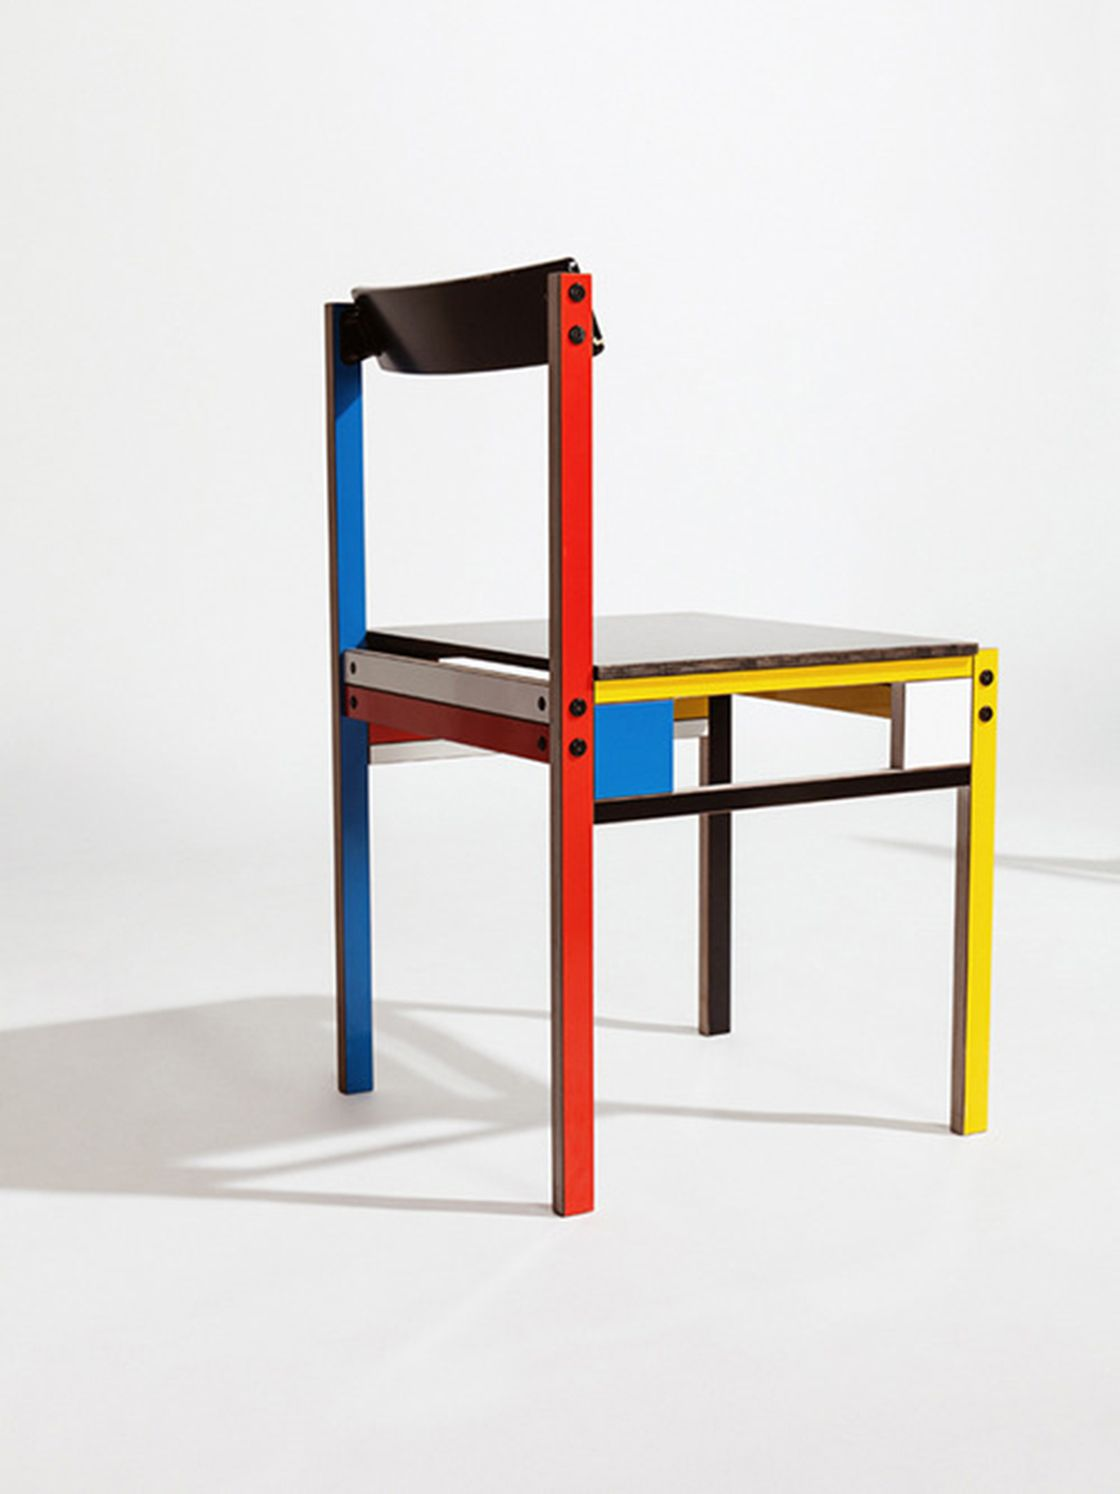 the finnish furniture designer yrj kukkapuro b is a central figure of finnish functionalism and is famous for his chairs